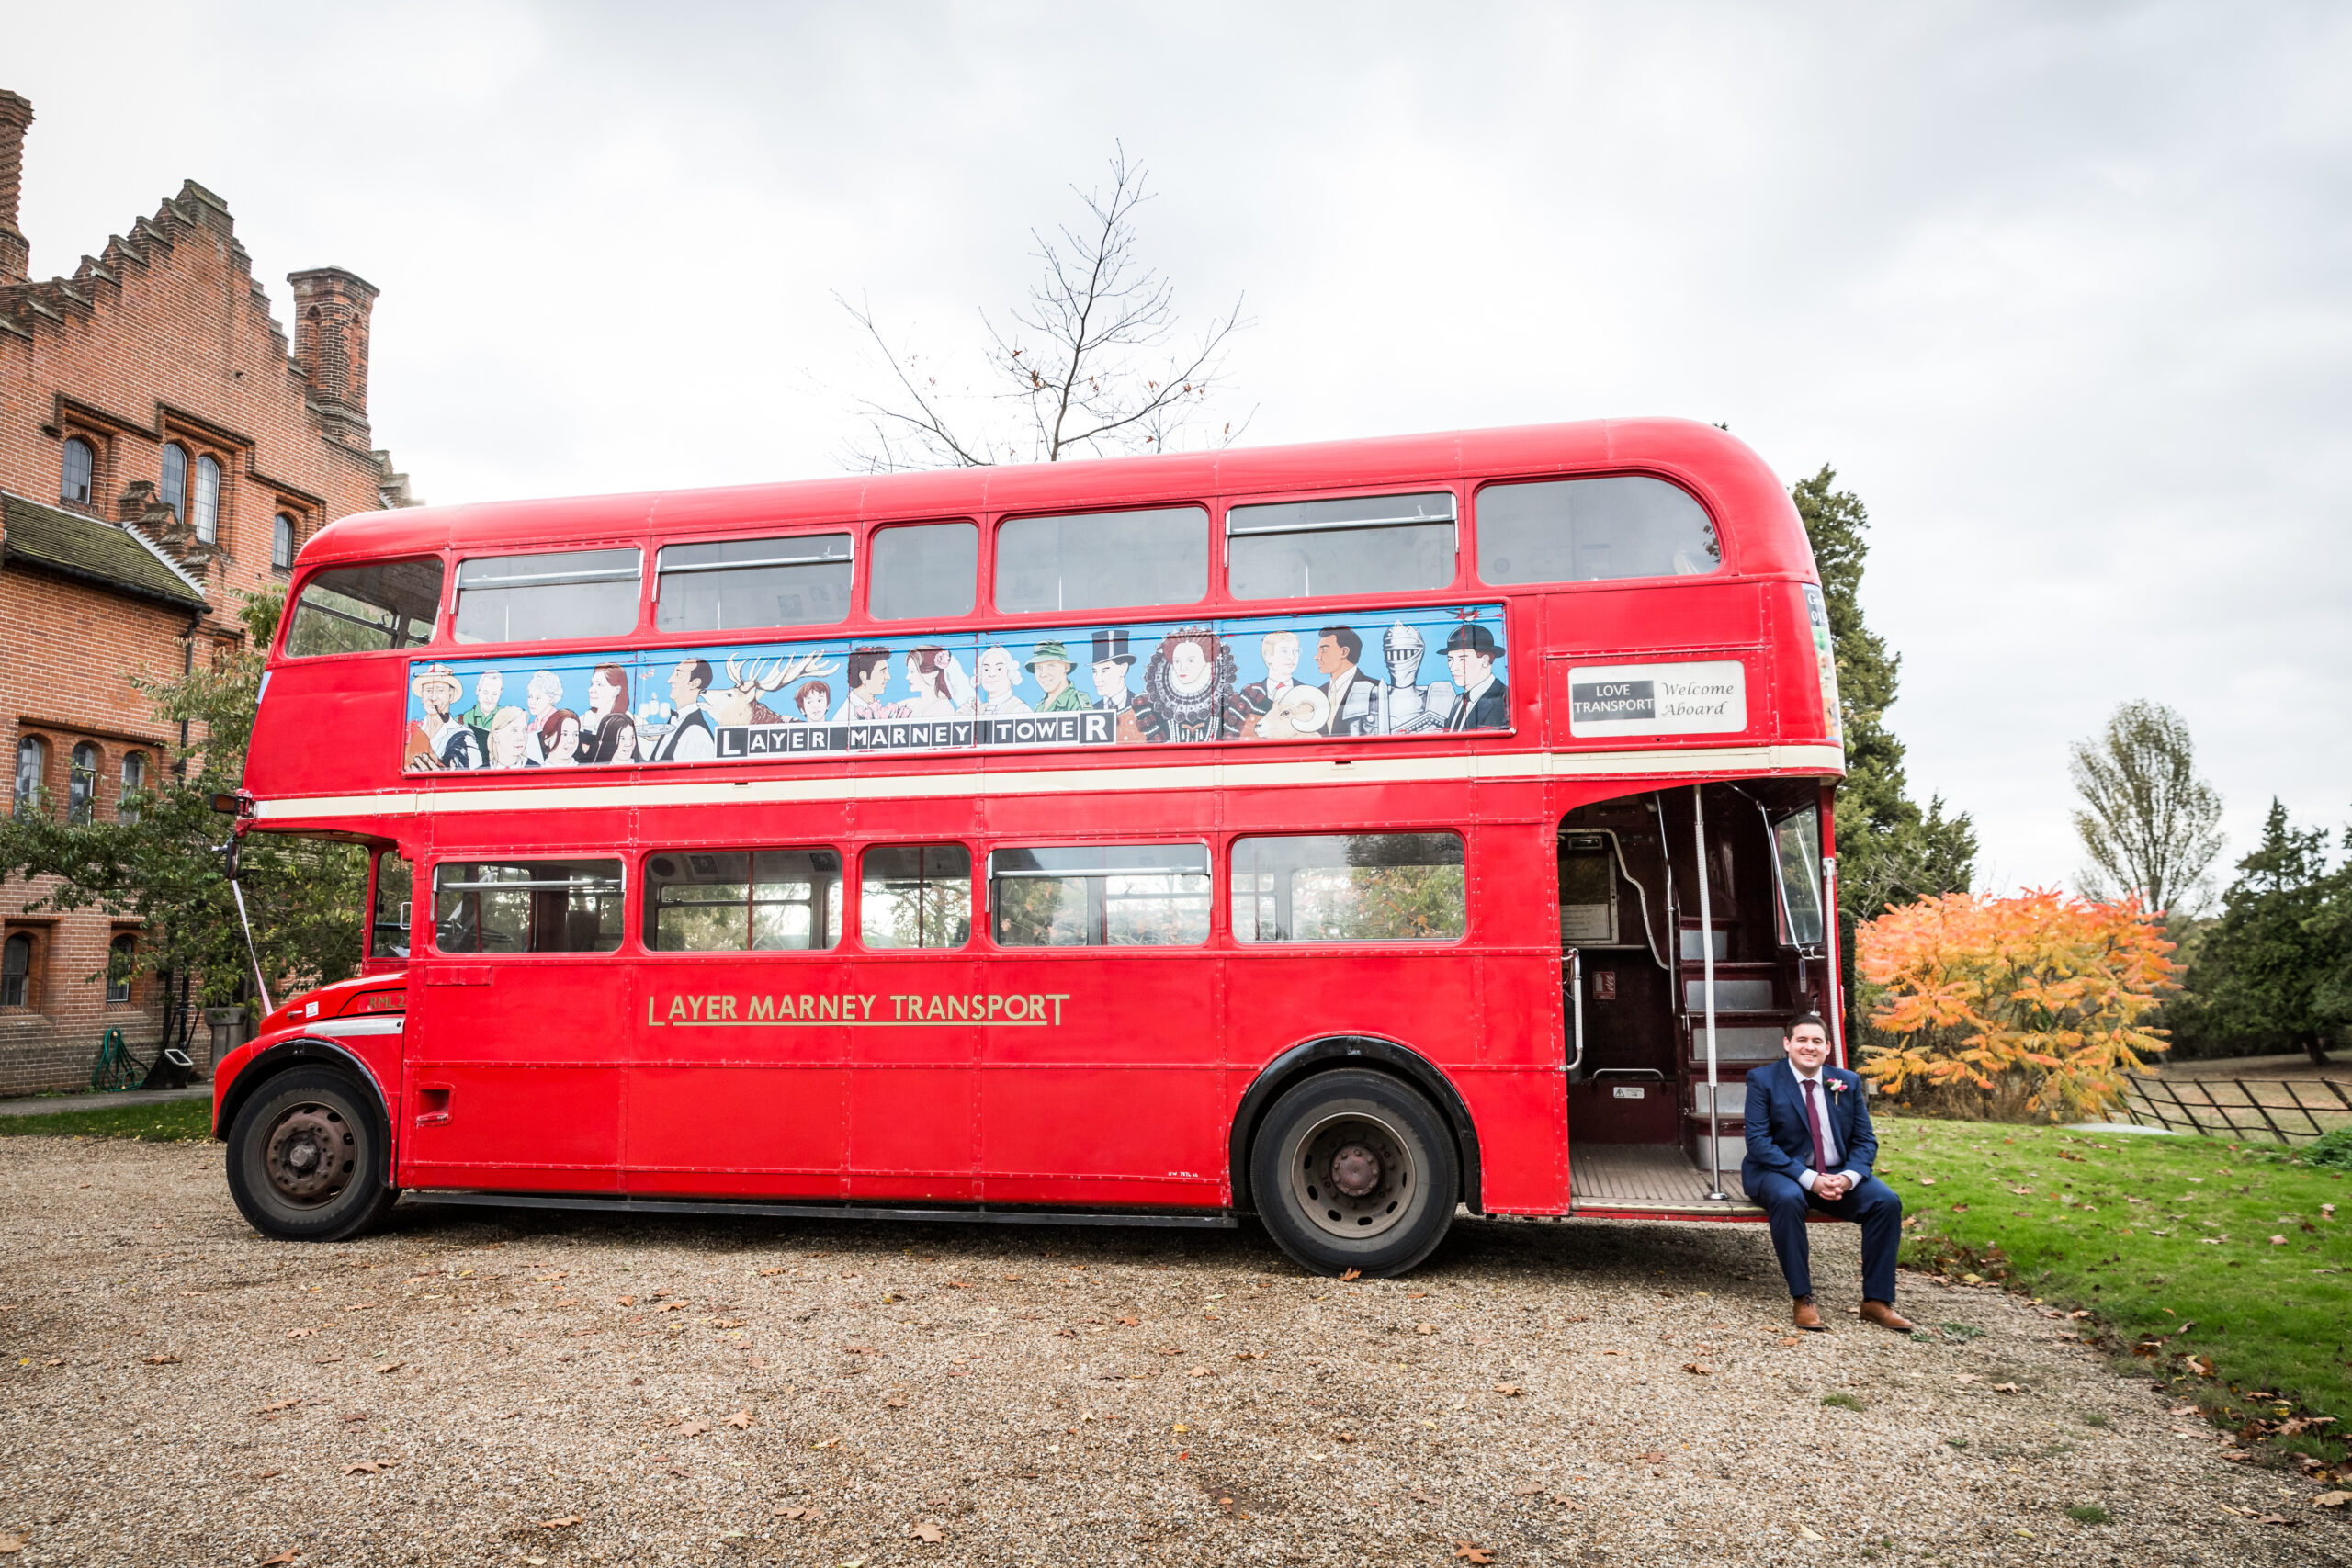 The groom sitting on the entrance to the bus